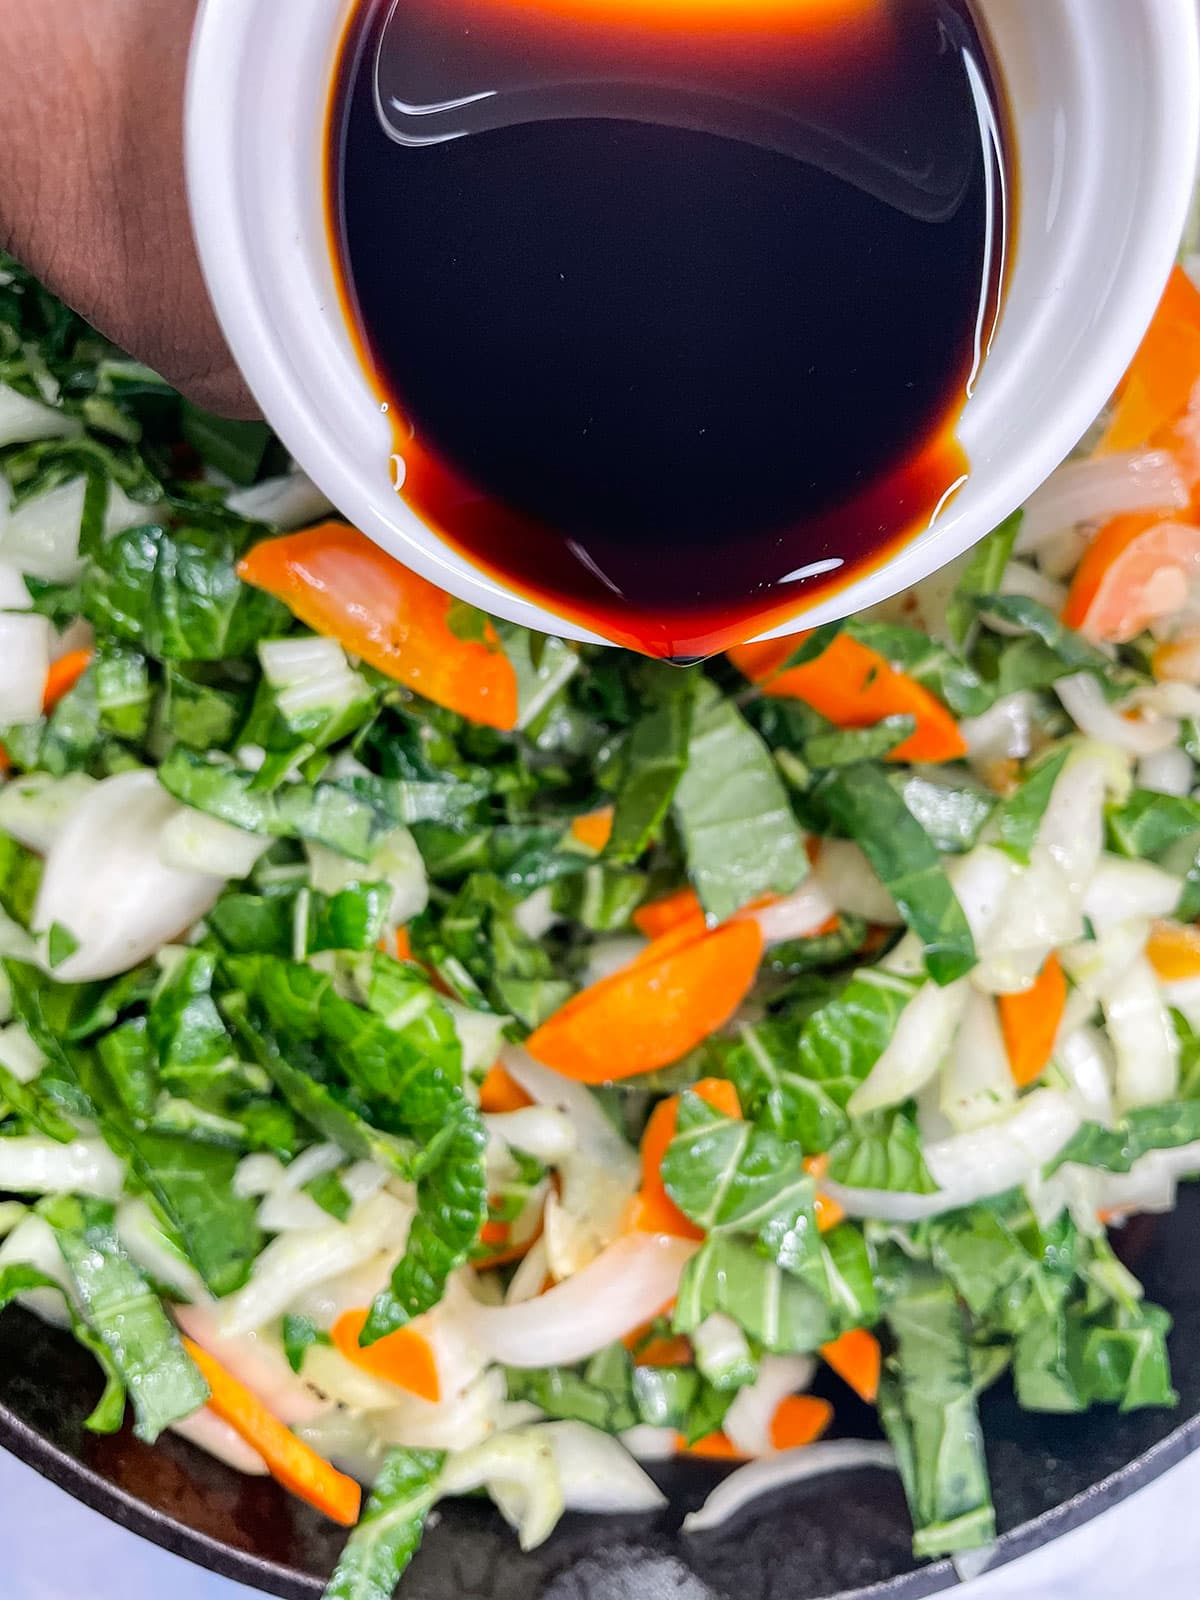 chop suey cooking and pouring tamari over it.